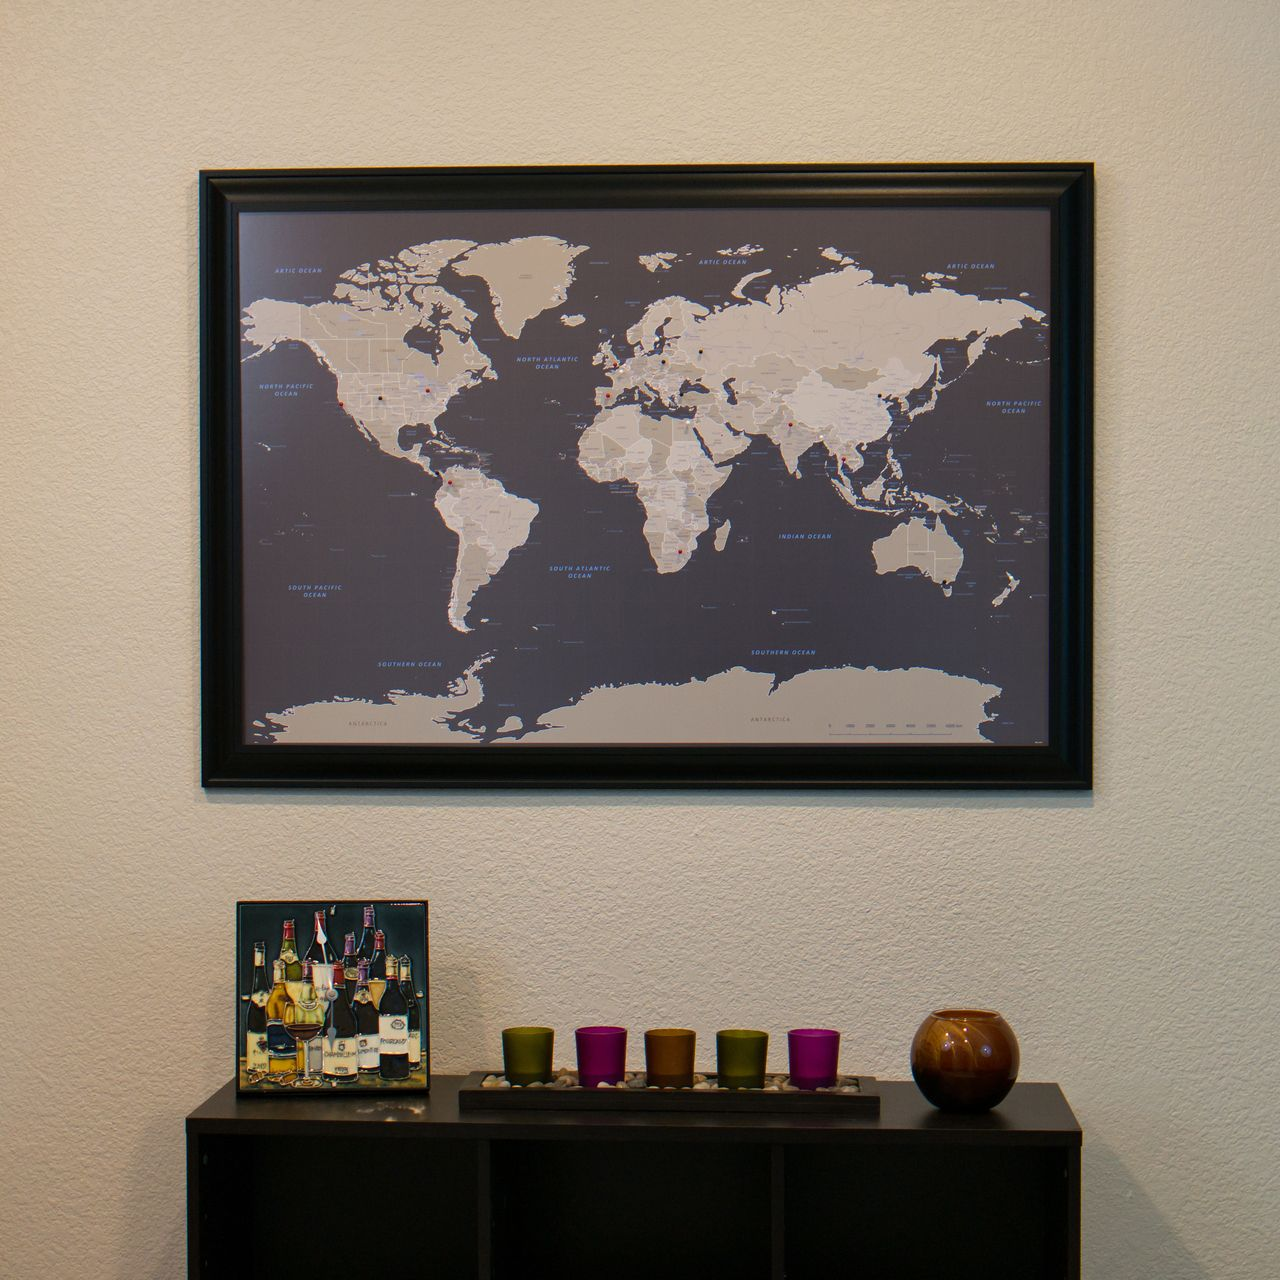 Earth Tone World Travel Map with pins Guest Room